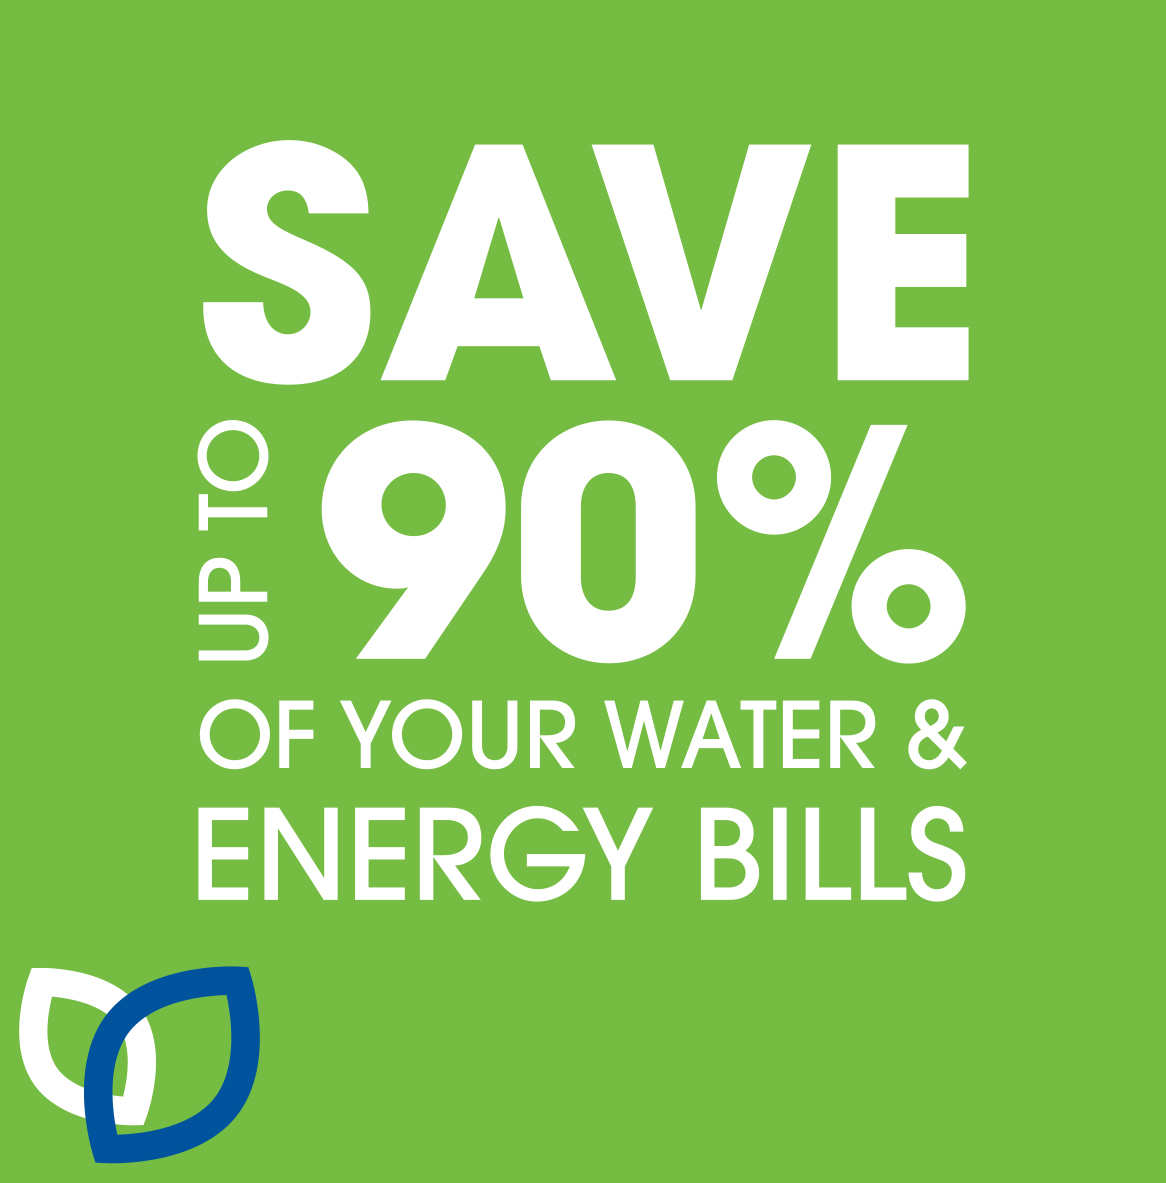 Save up to 90% on your water and energy bills - dental services